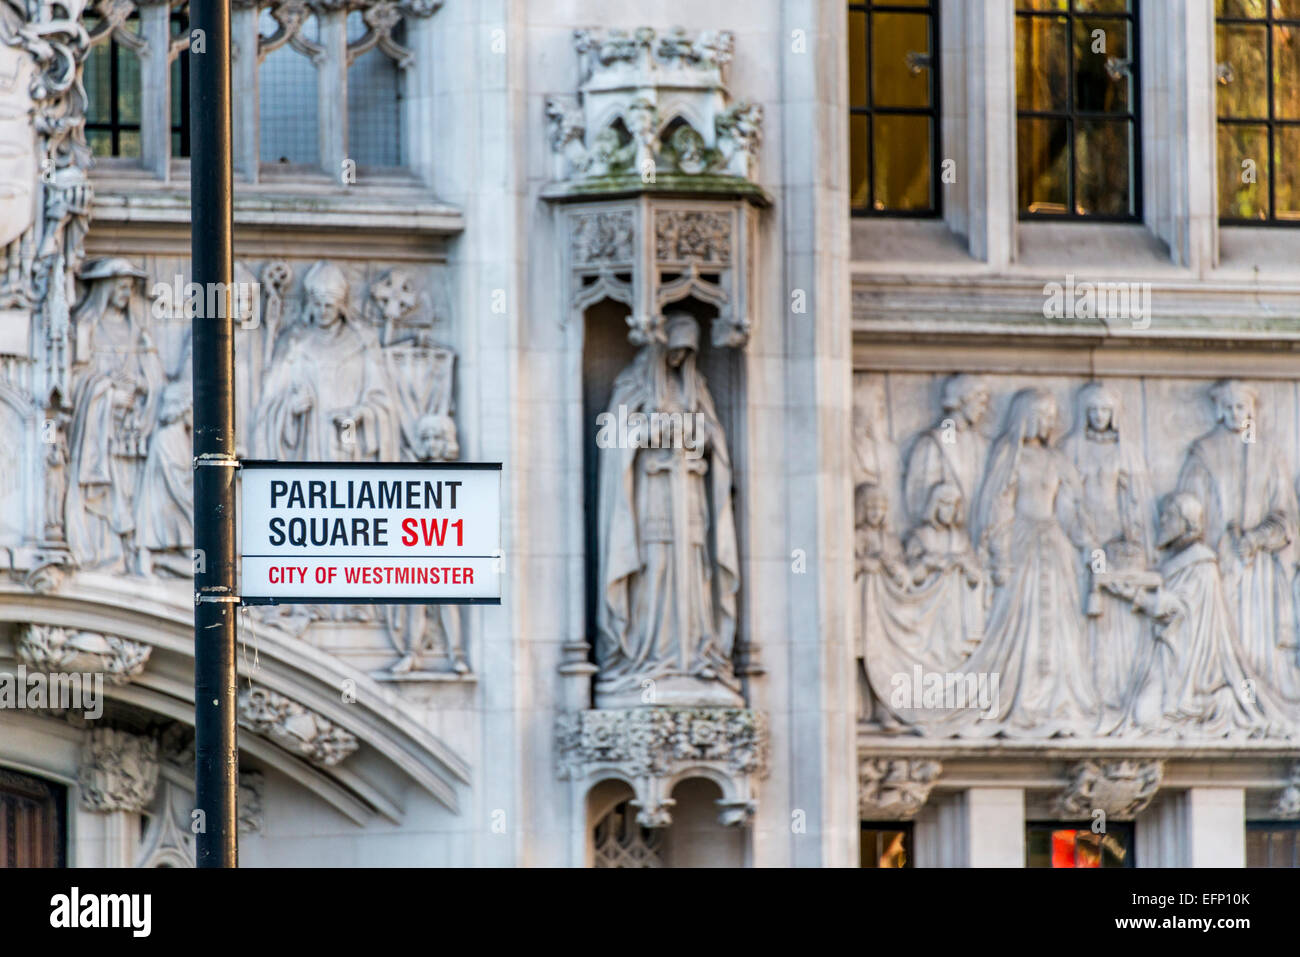 A sign reads Parliament Square SW1 City of Westminster; the square is famous for the Houses of Parliament, London - Stock Image